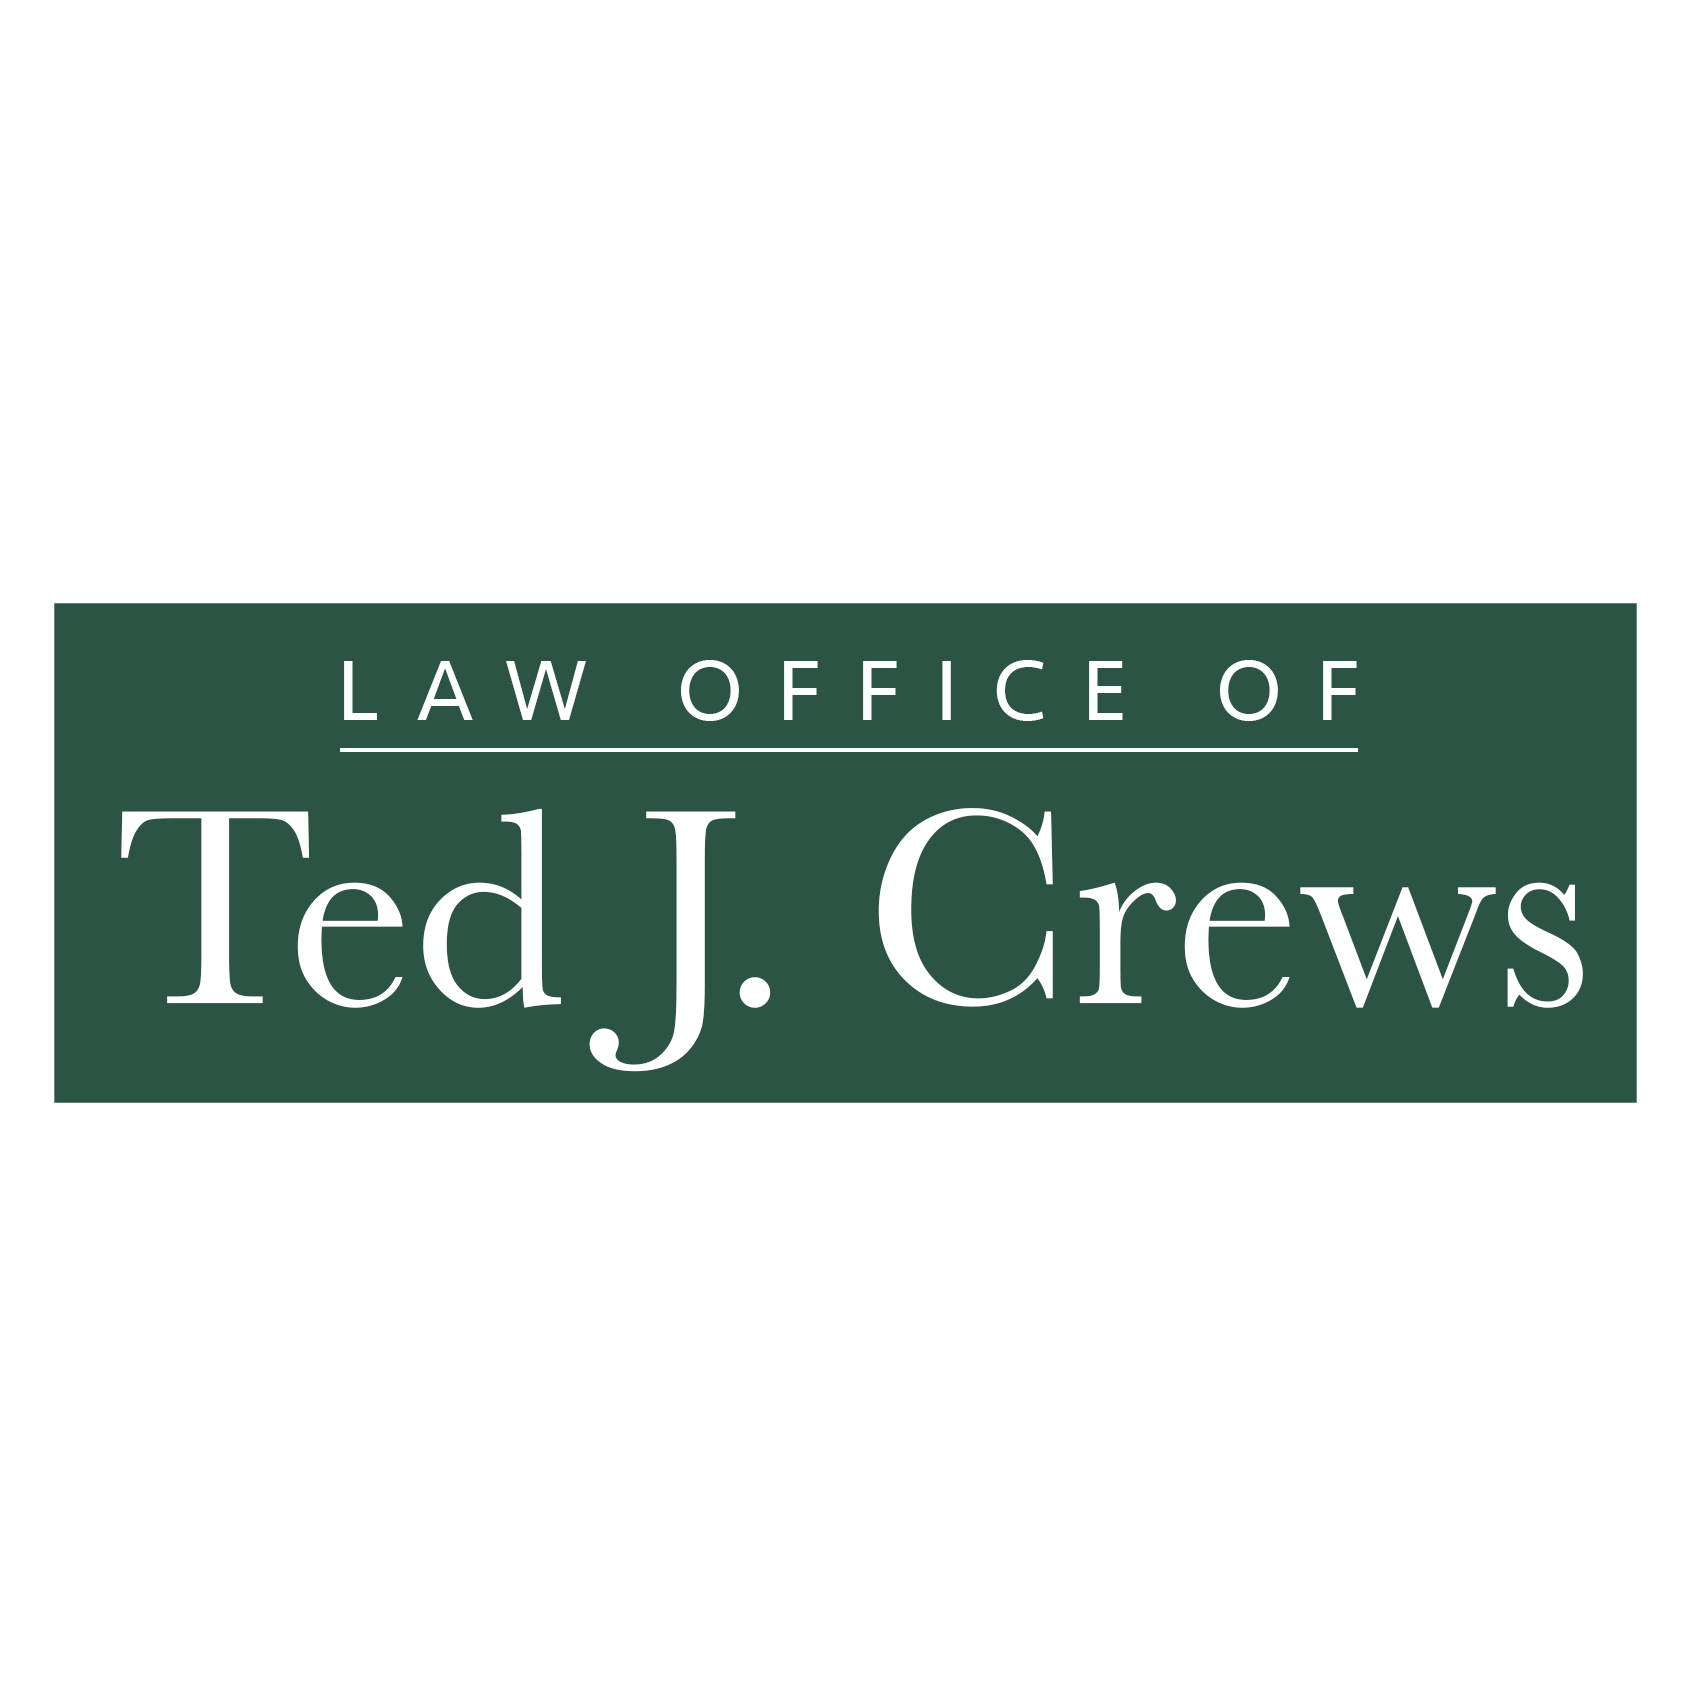 Law Office of Ted J. Crews